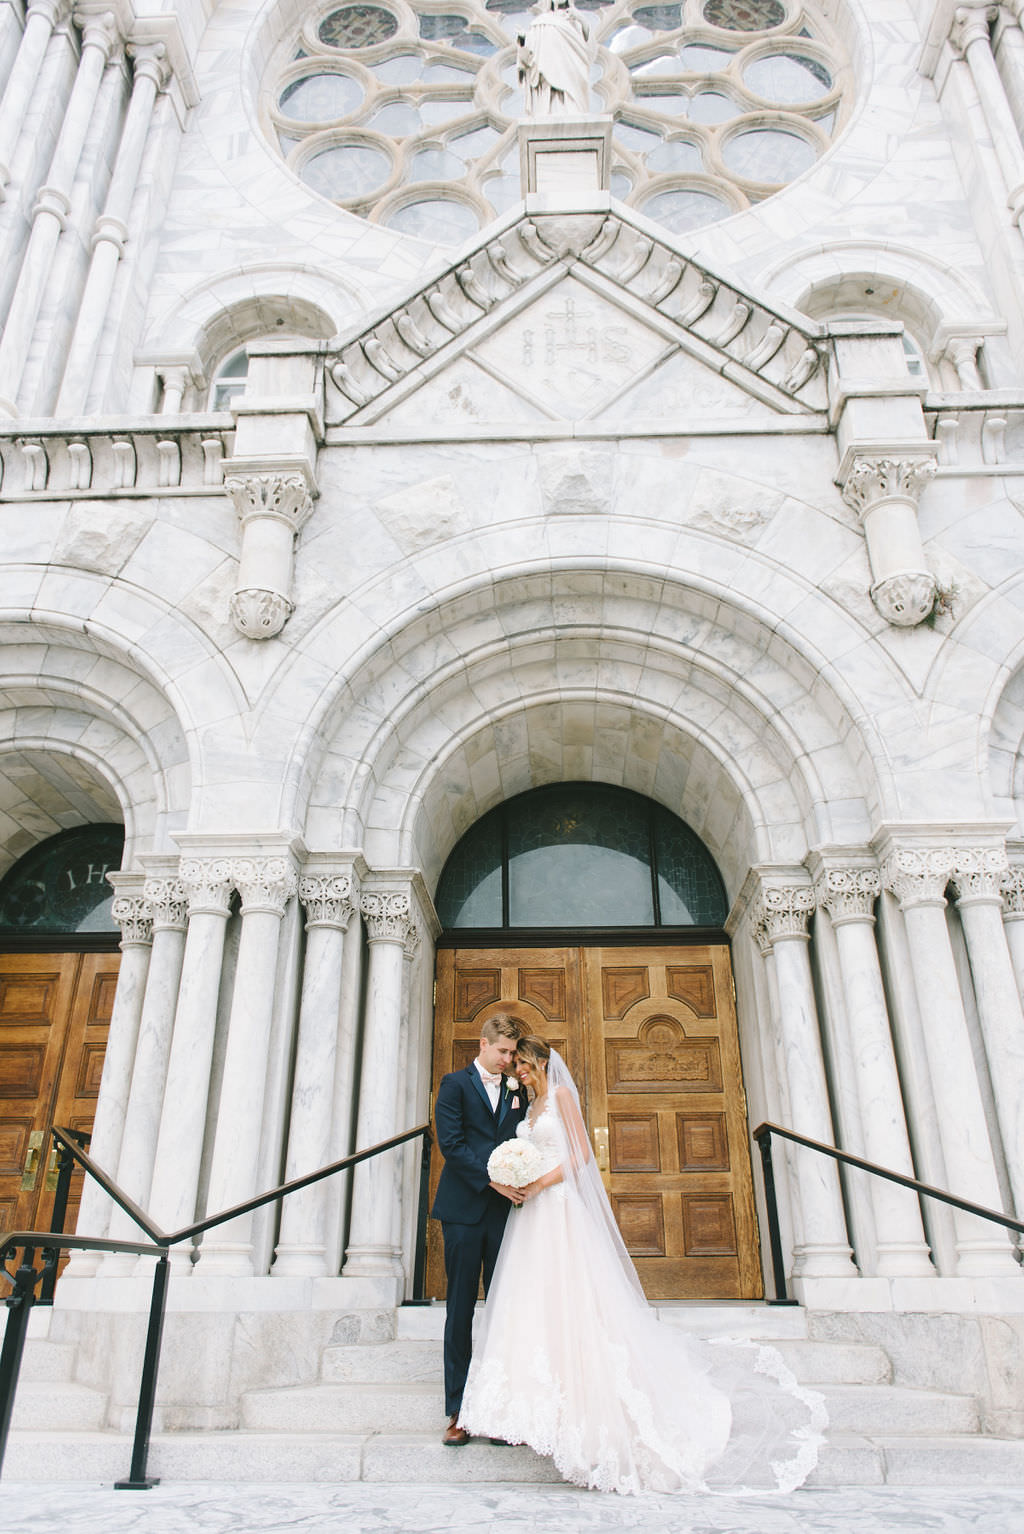 Florida Bride and Groom Outdoor Wedding Portrait on Staircase Outside Traditional Tampa Wedding Ceremony Venue Sacred Heart Catholic Church   Photographer Kera Photography